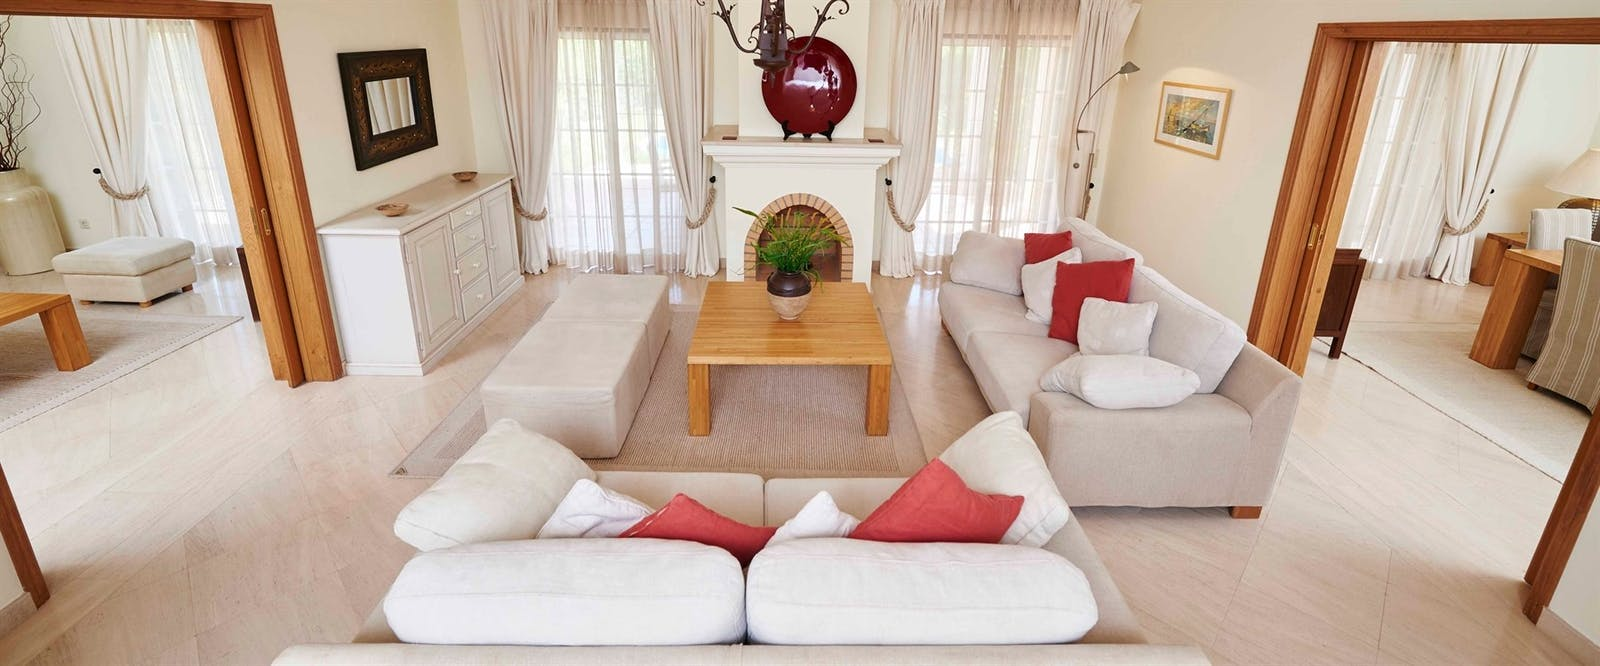 Luxury Villa Living Room at Martinhal Quinta Family Resort, Algarve